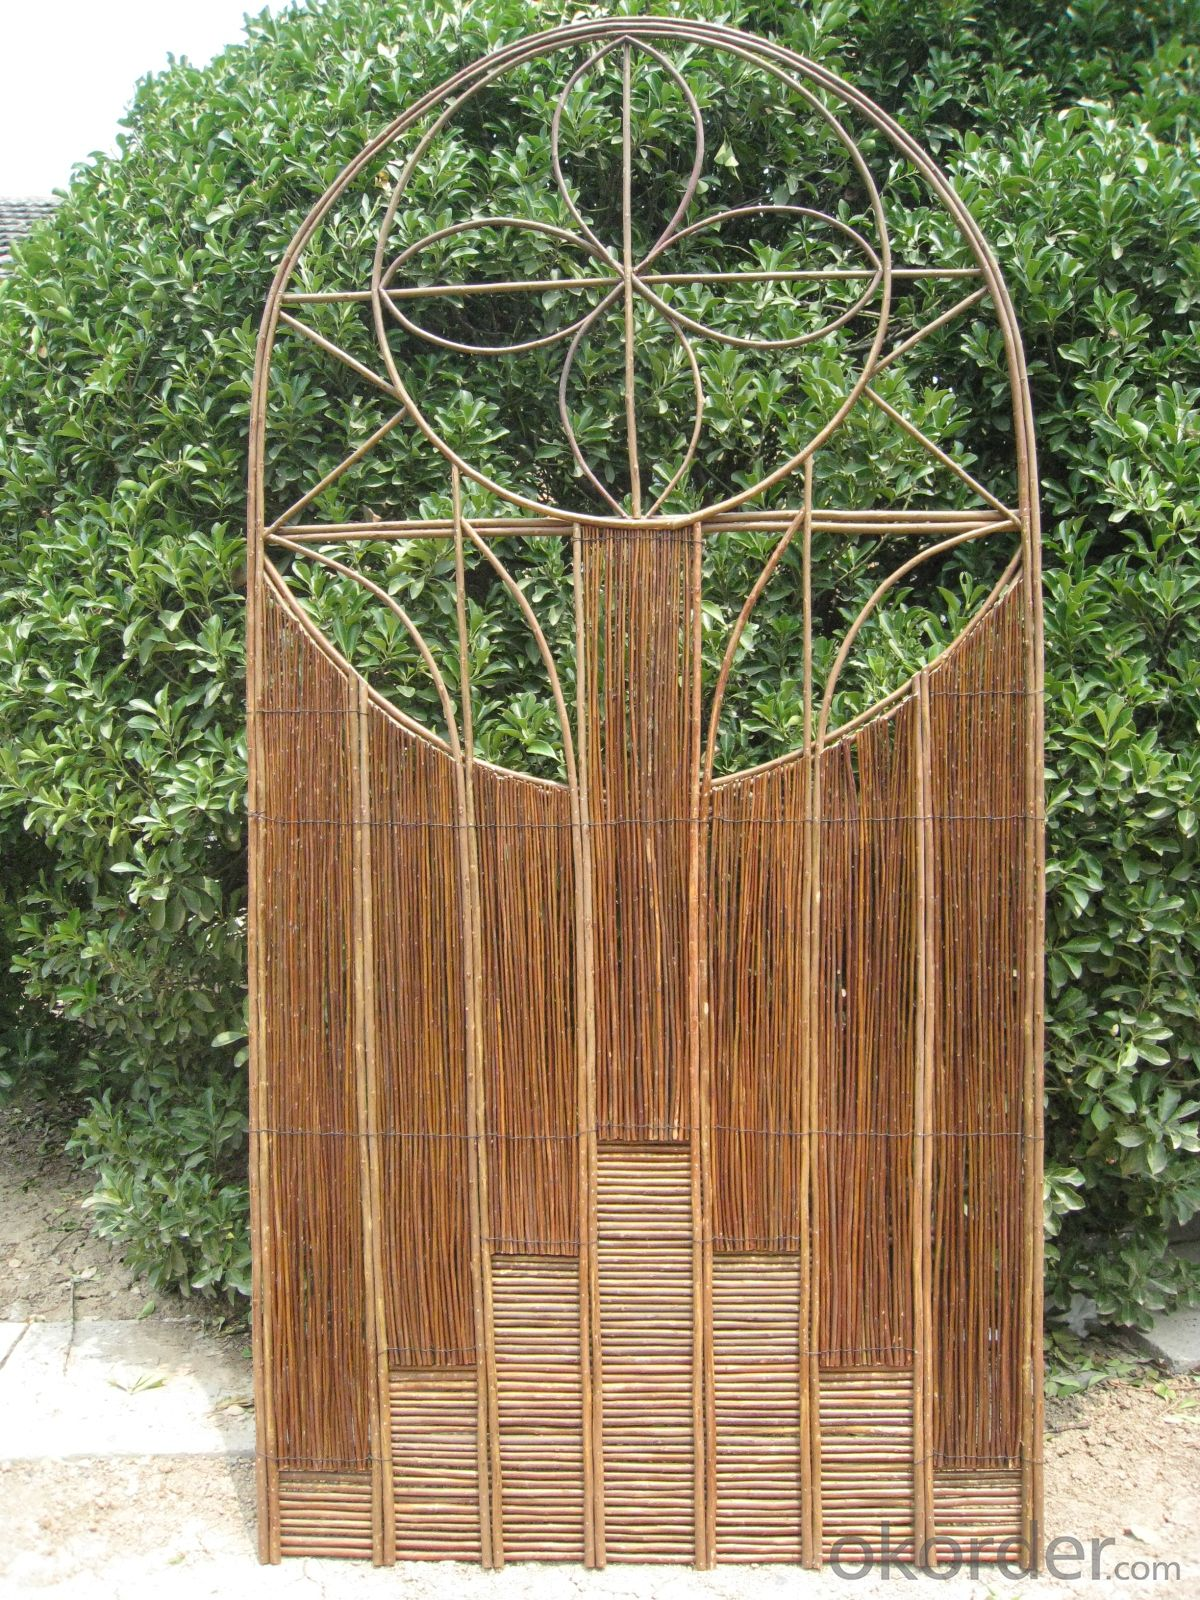 WILLOW DOOR NATURAL WOVEN FENCE SCREENING